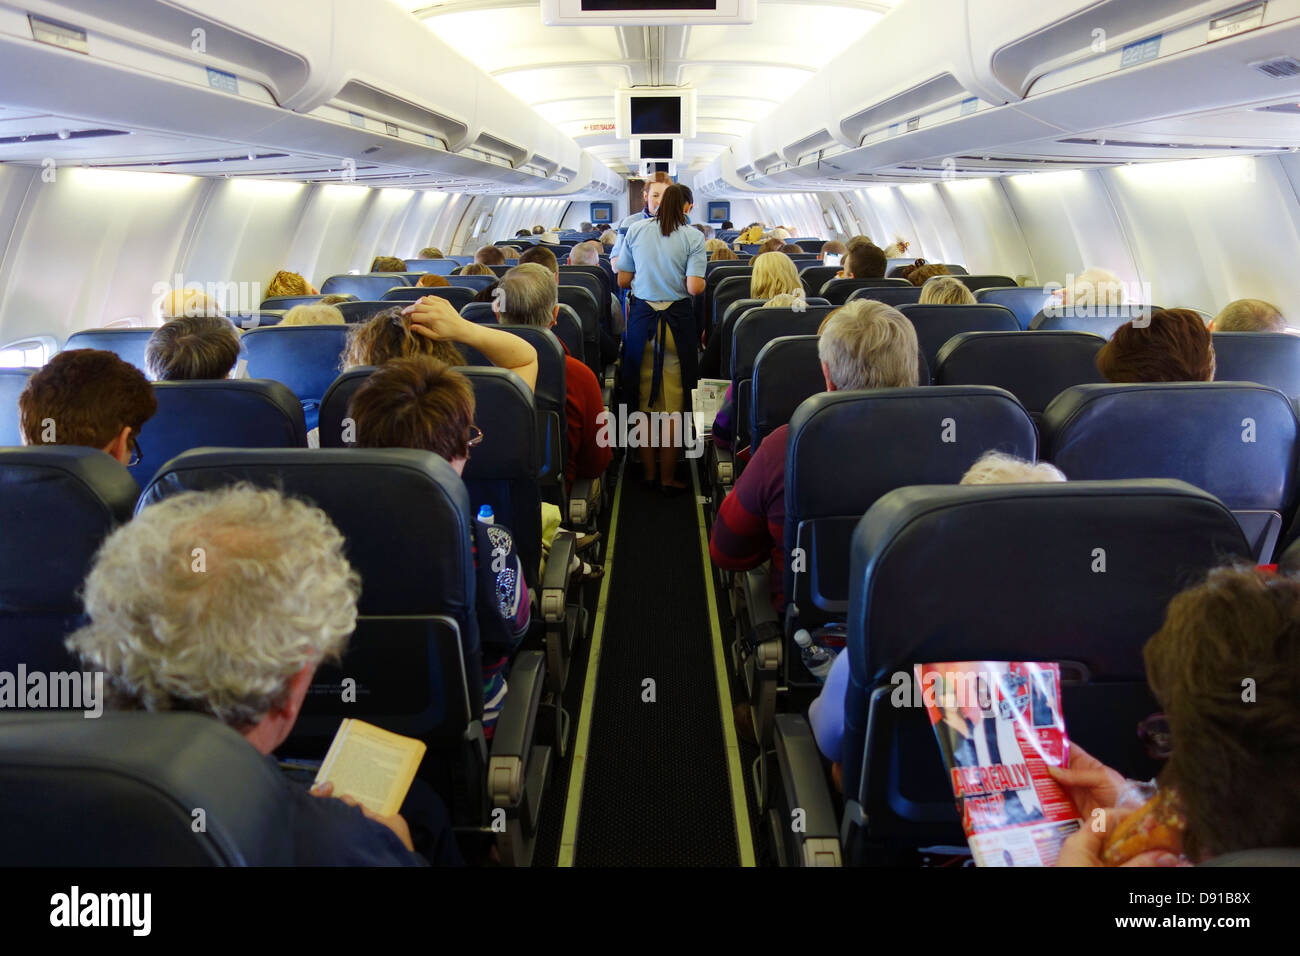 Passengers On A Aeroplane Interior Of Seating Area On